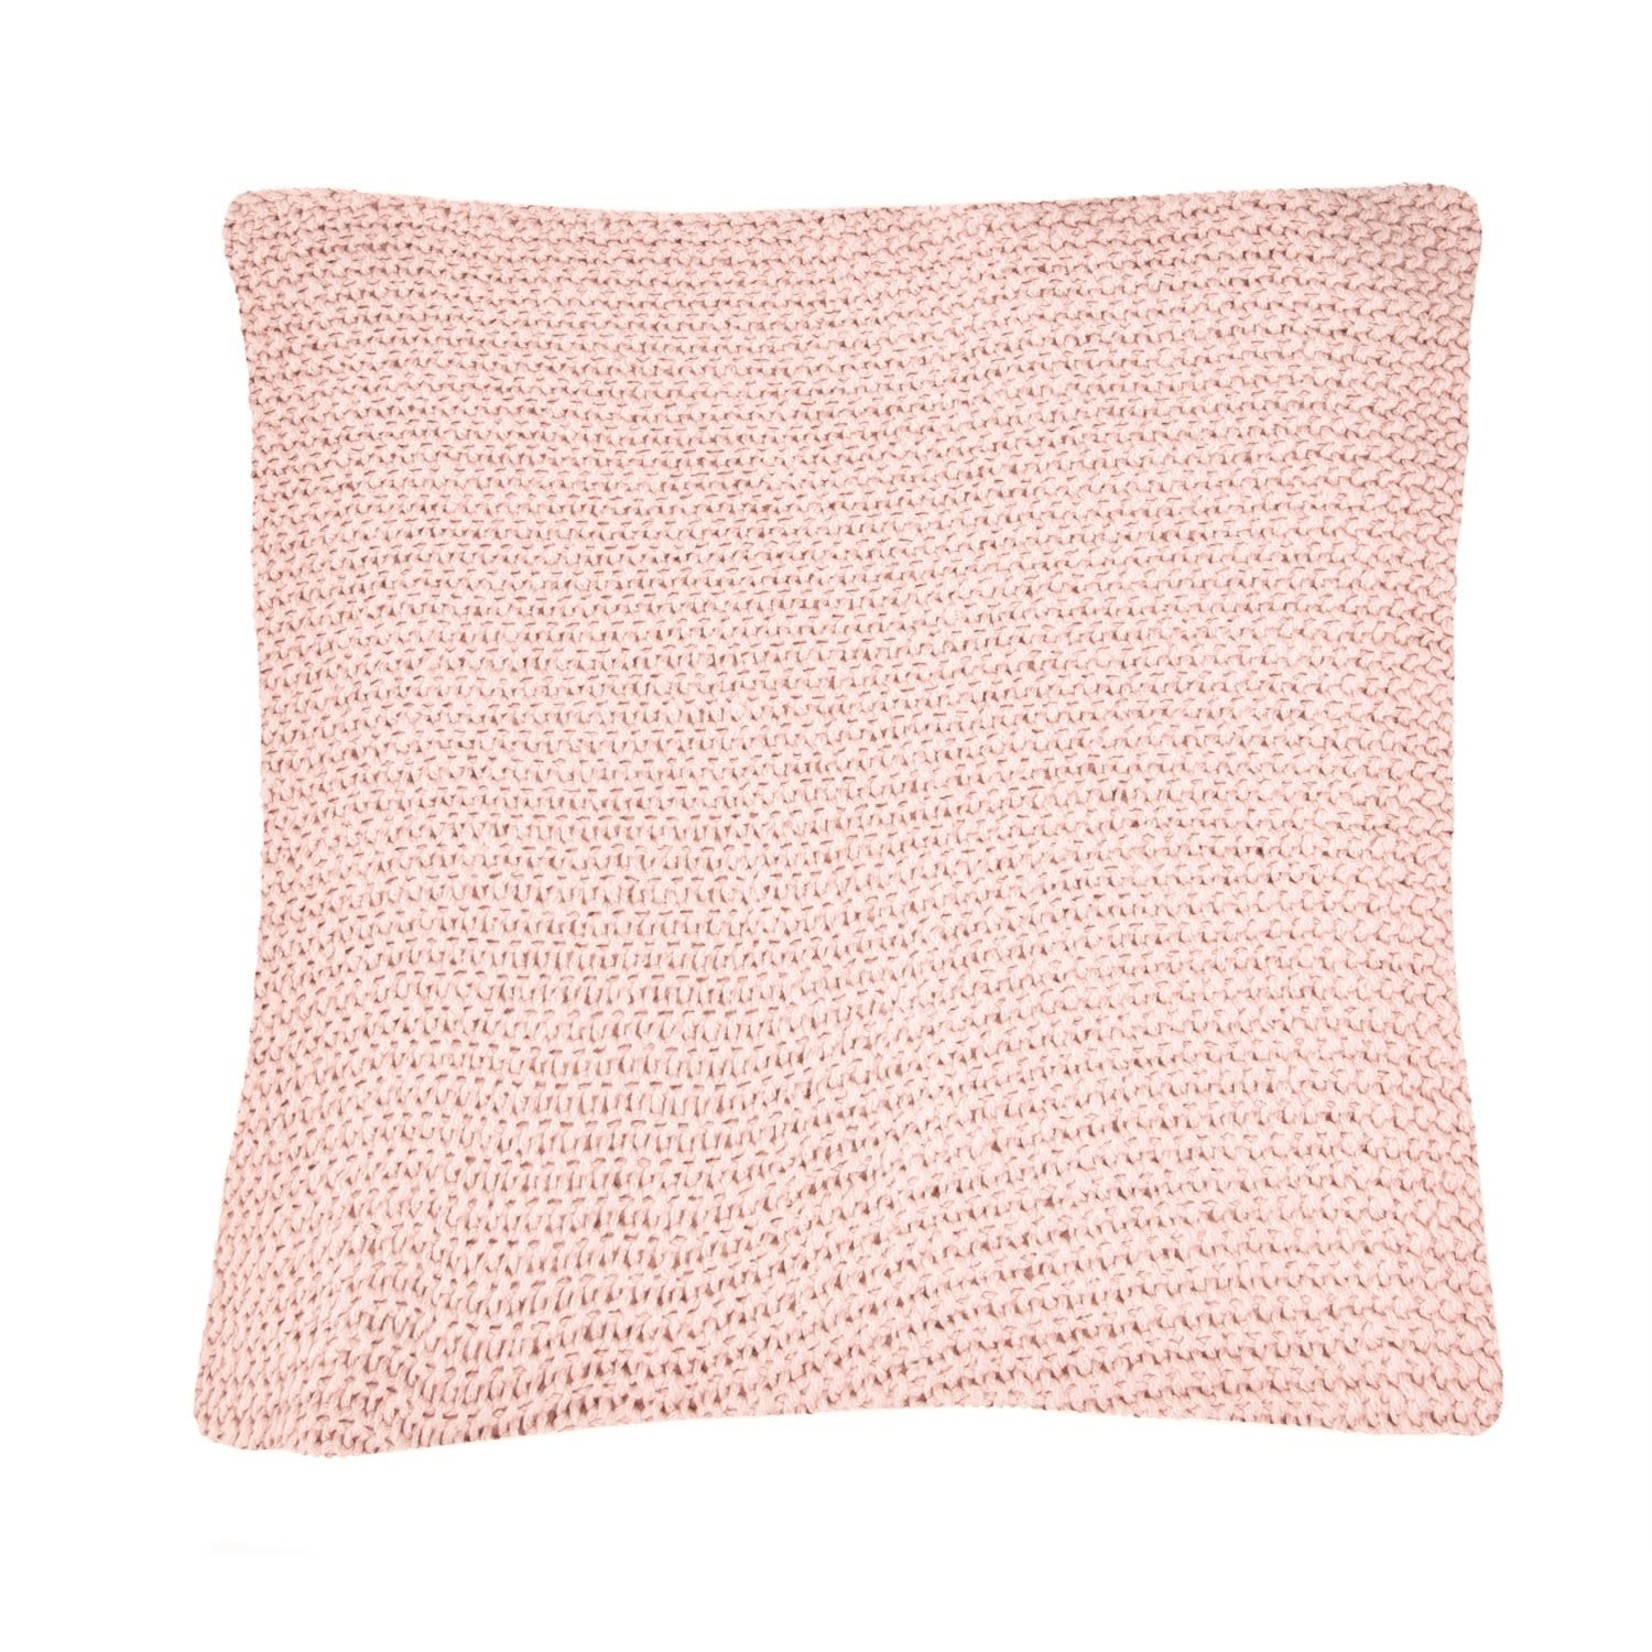 Bulky Pink Knitted Cushion